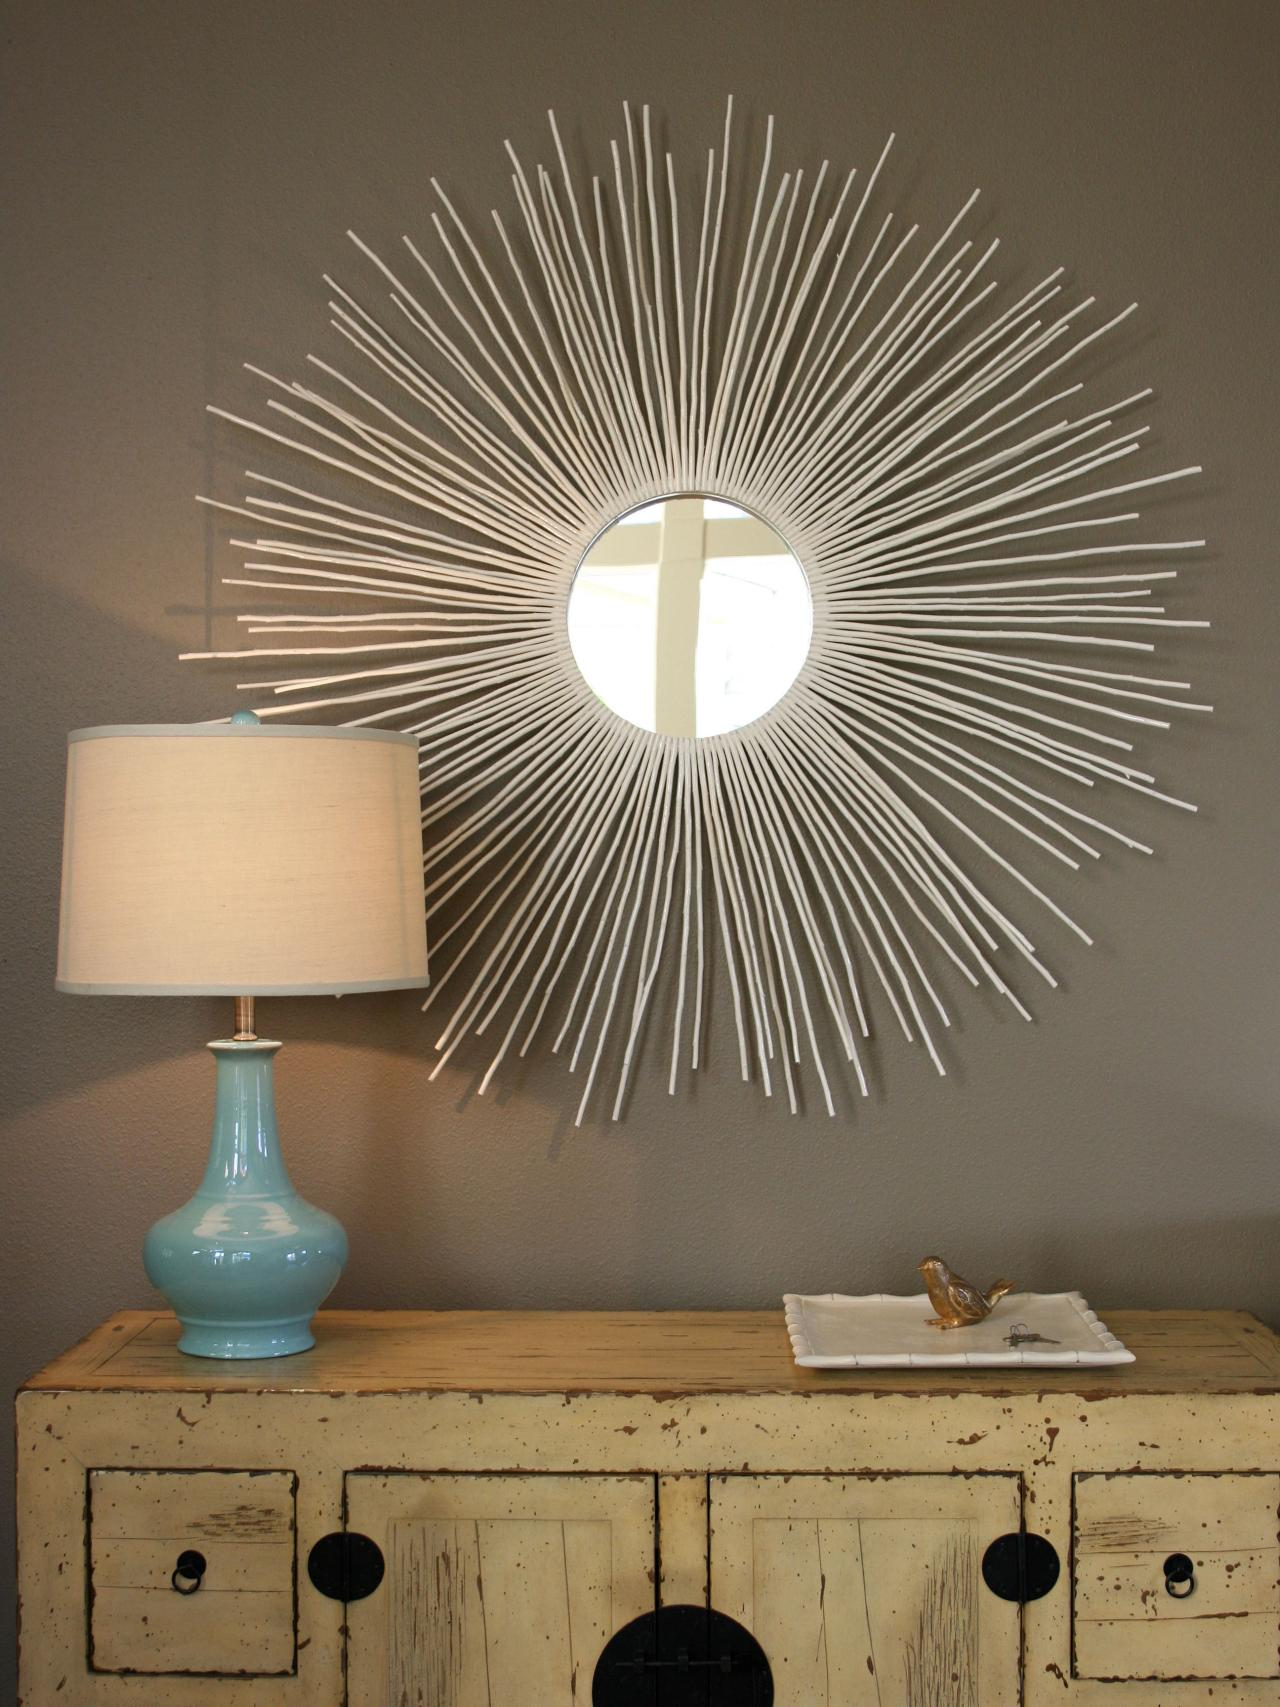 beautiful starburst wall decor with mirror on grey wall plus wooden table plus table lamp ideas